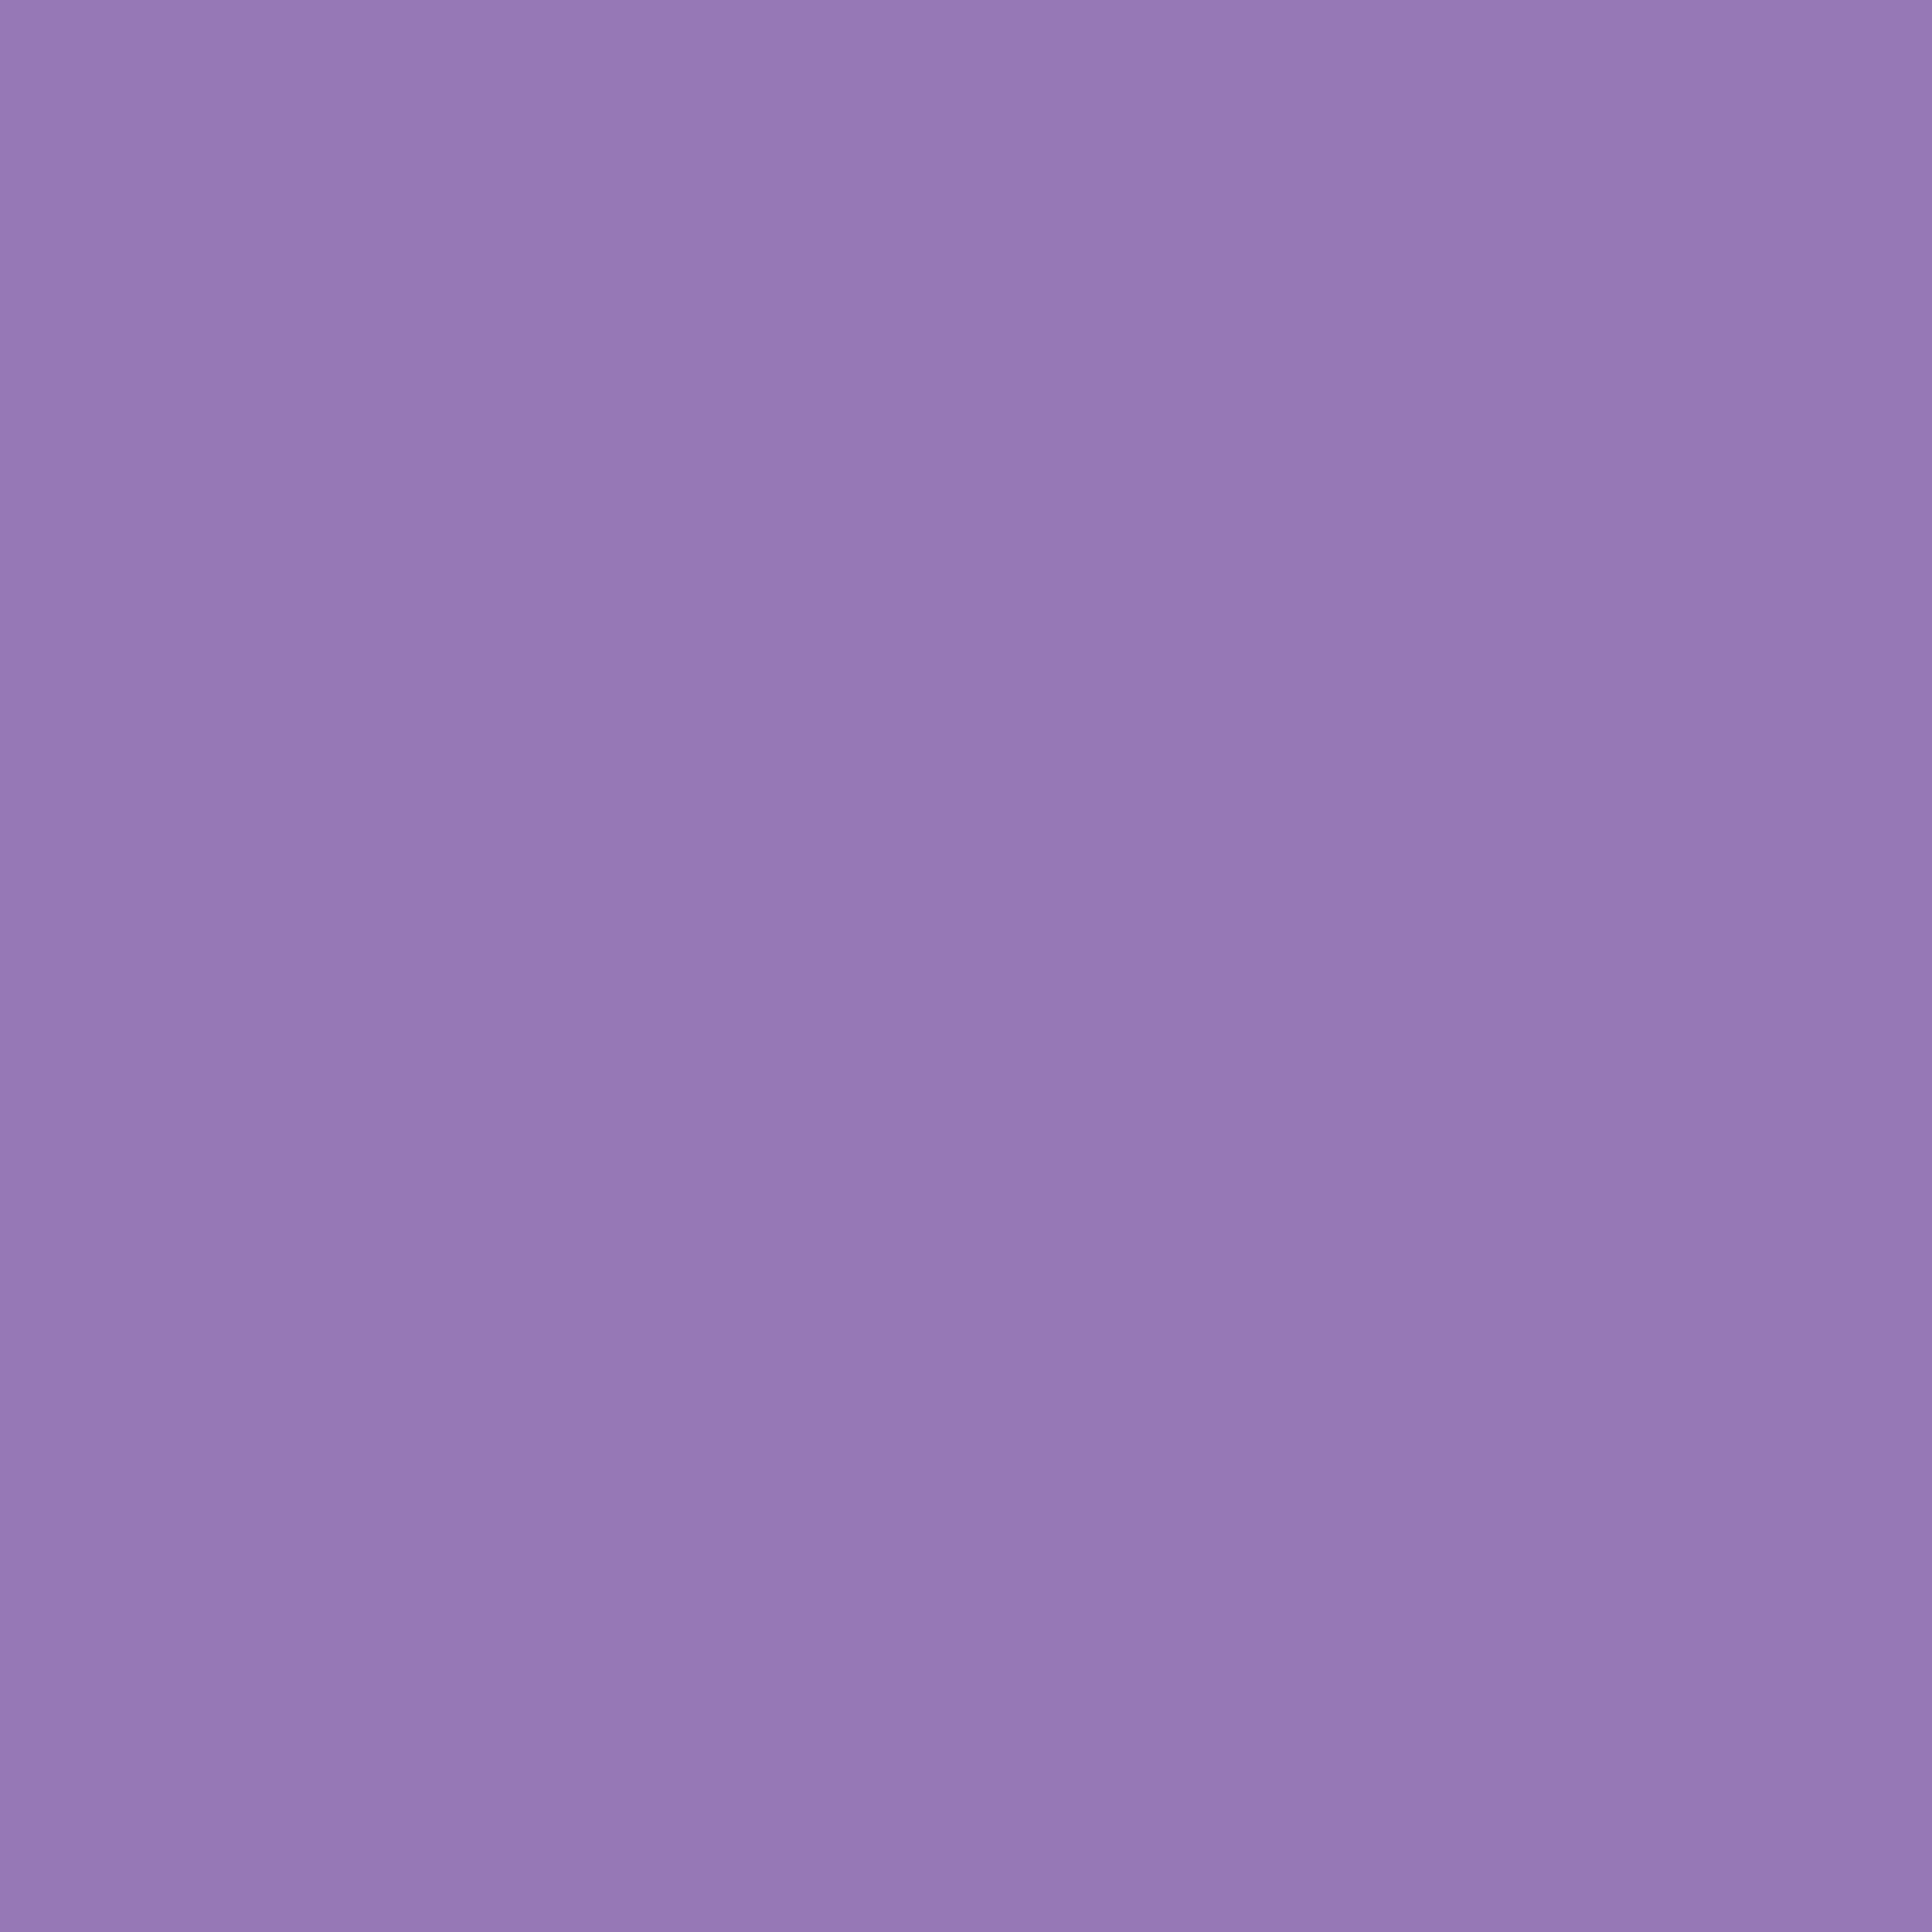 2048x2048 Purple Mountain Majesty Solid Color Background